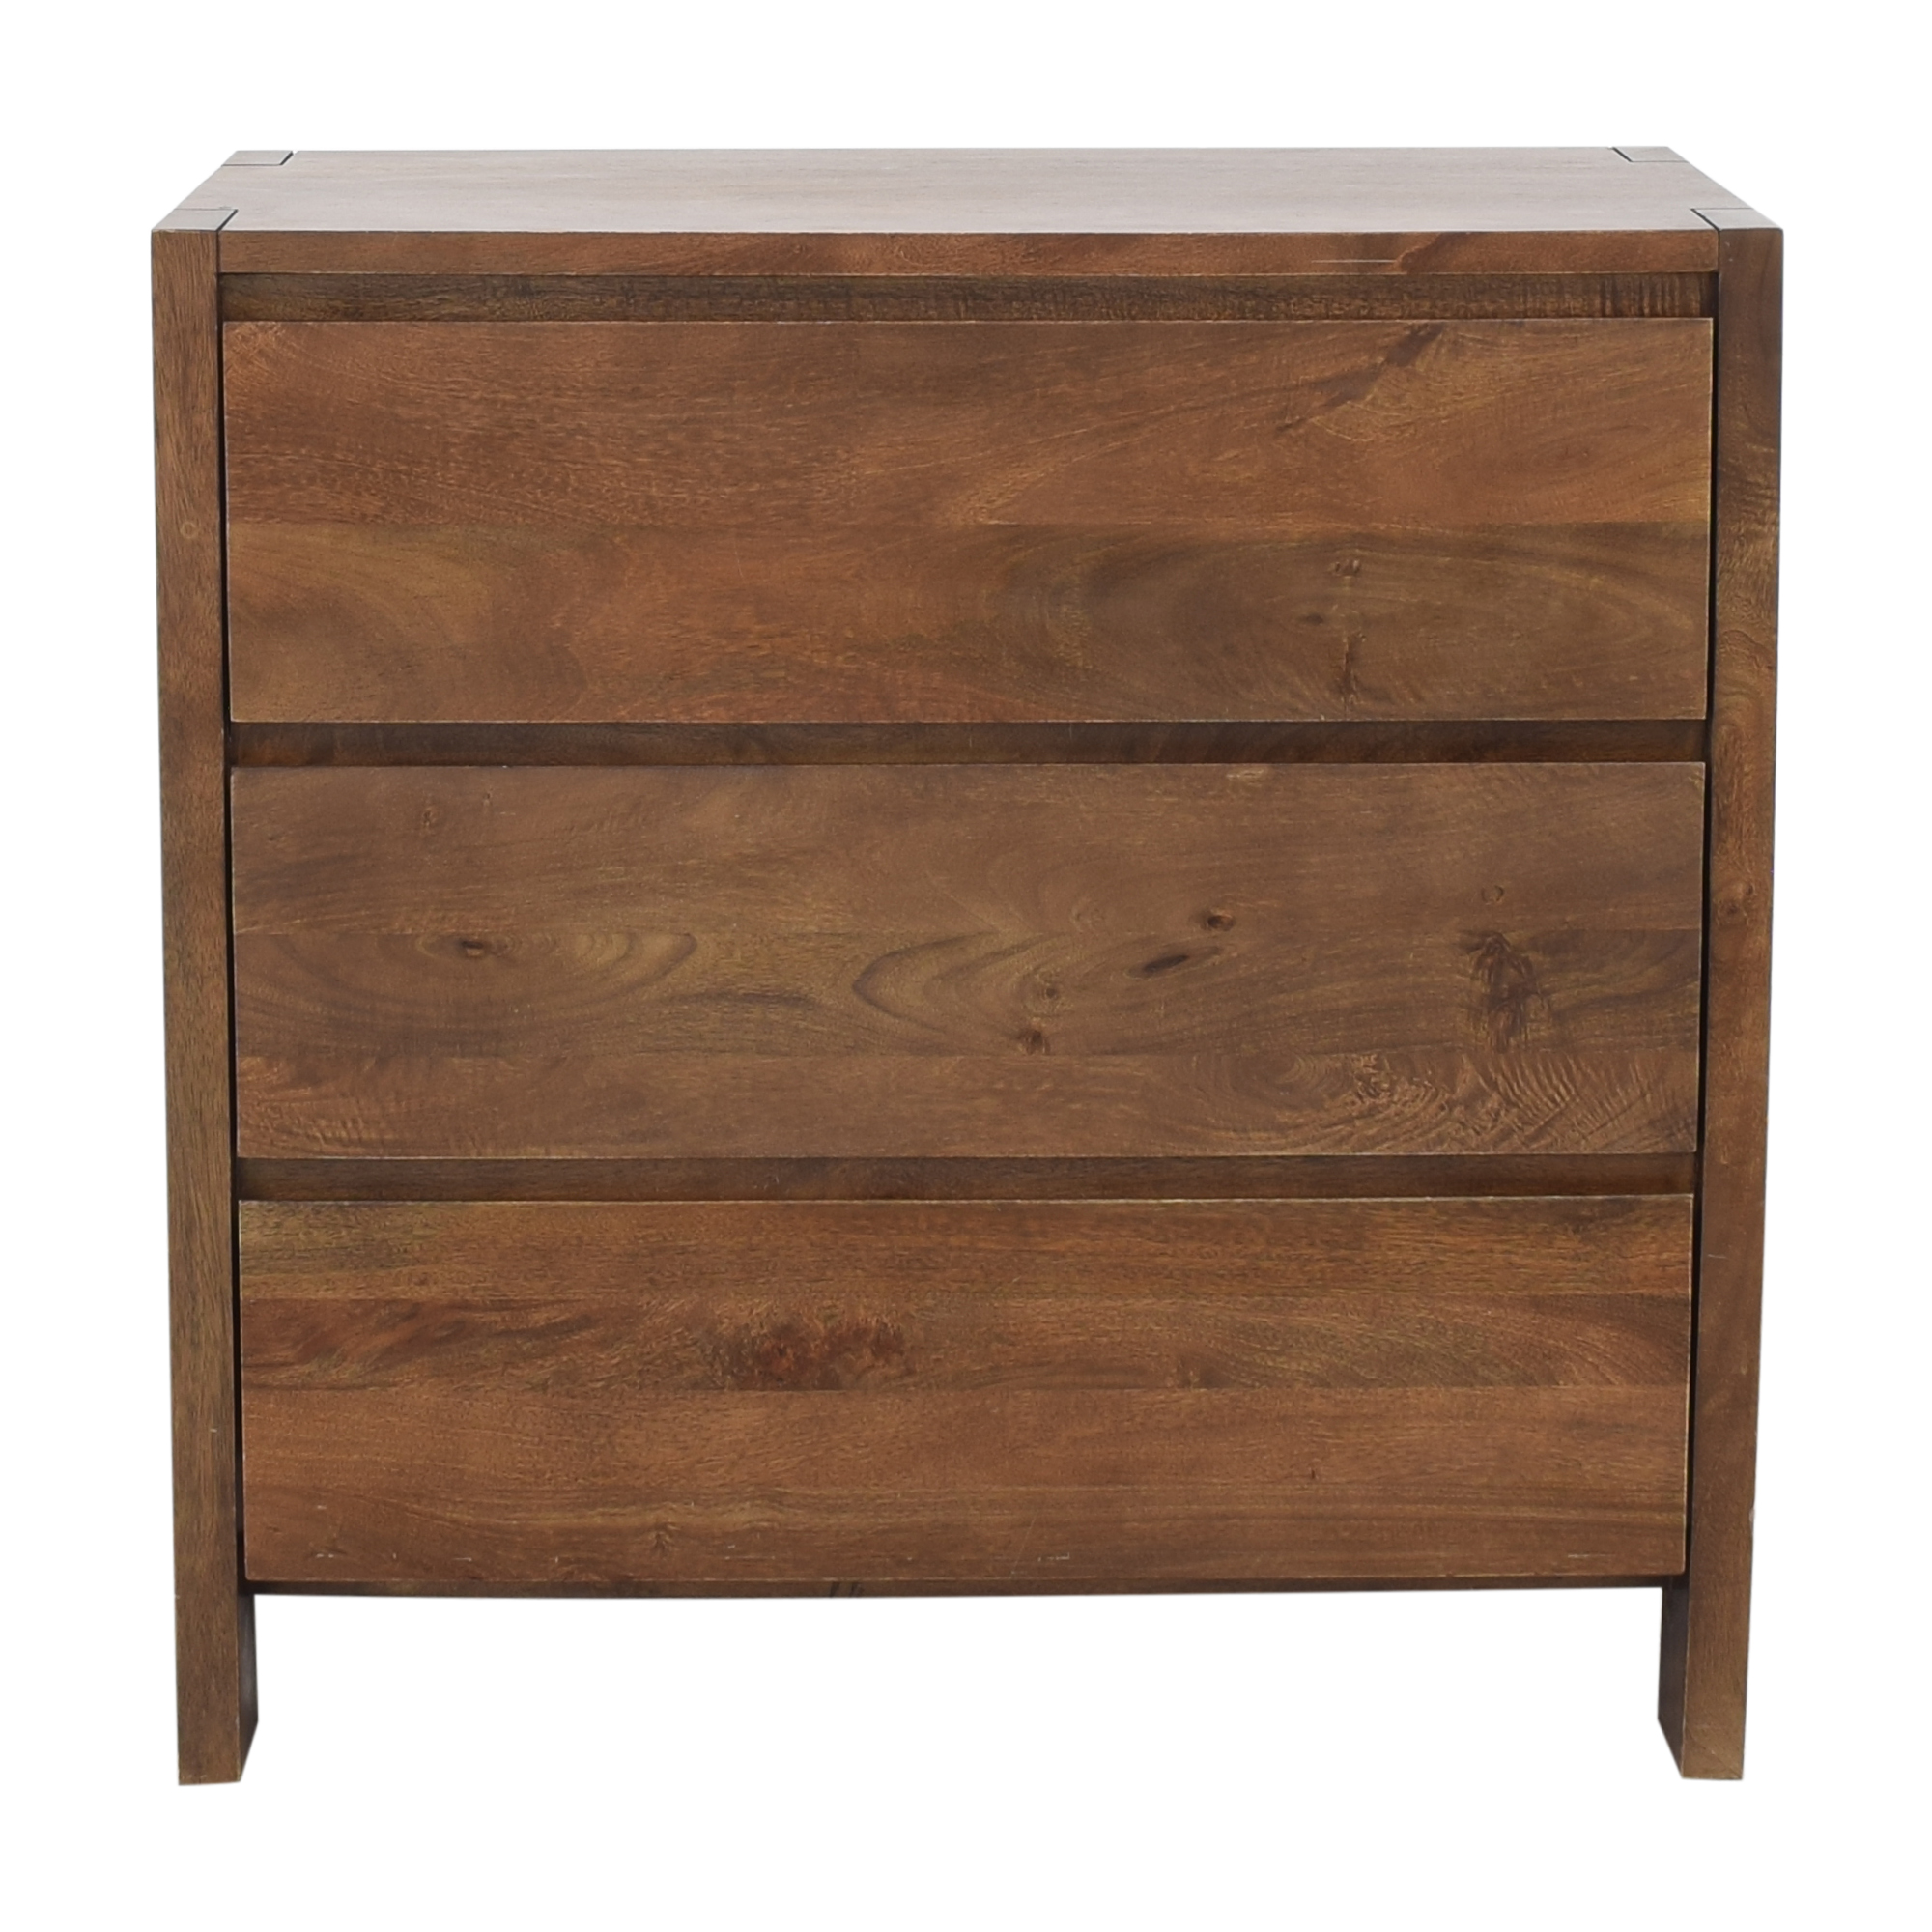 shop West Elm West Elm Boerum Three Drawer Dresser online